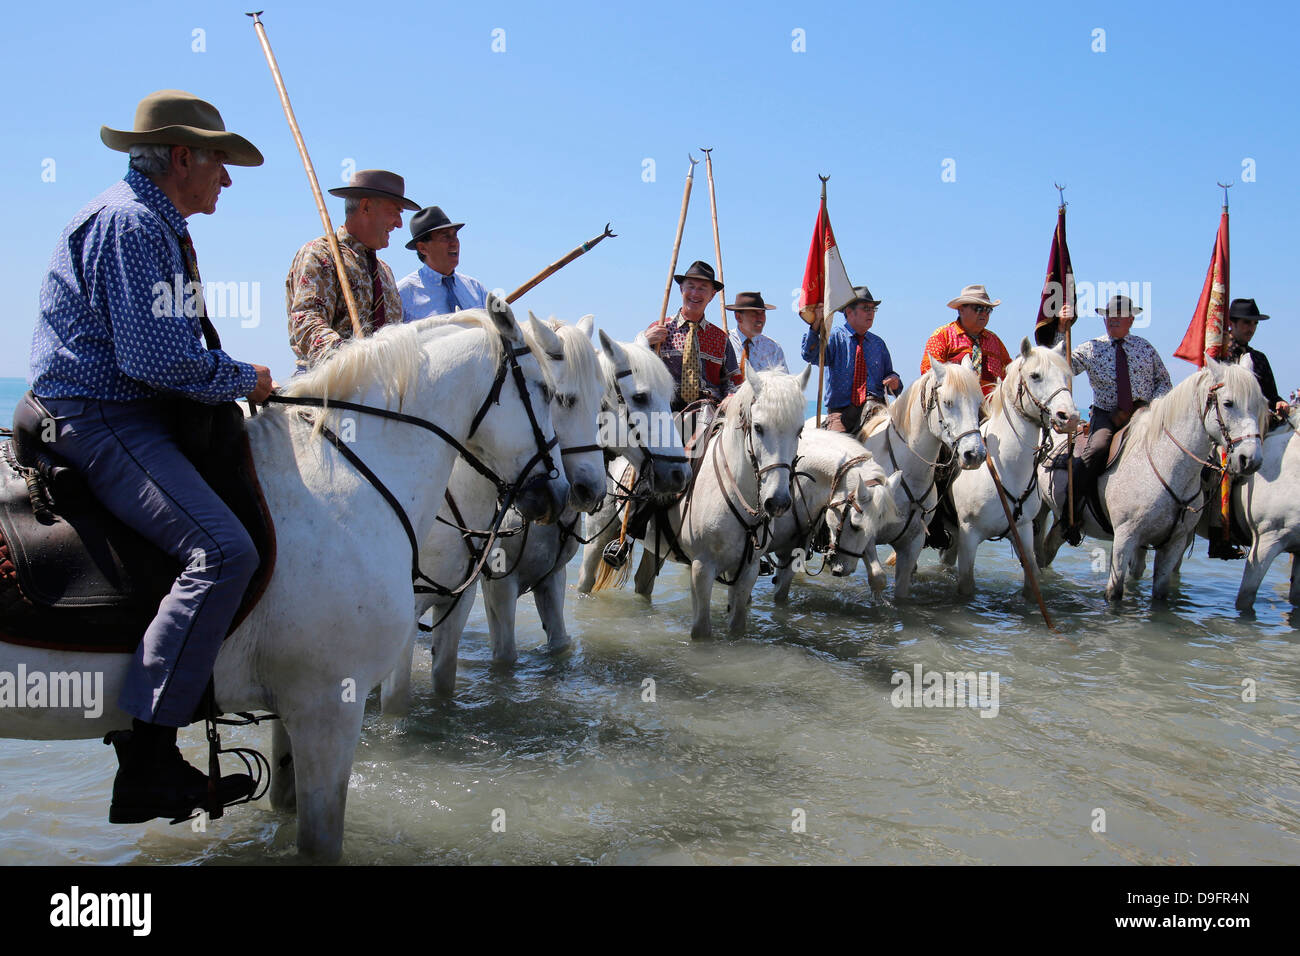 Guardians on horseback escorting the procession to the sea, pilgrimage at Les Saintes-Maries-de-la-Mer, Bouches - Stock Image